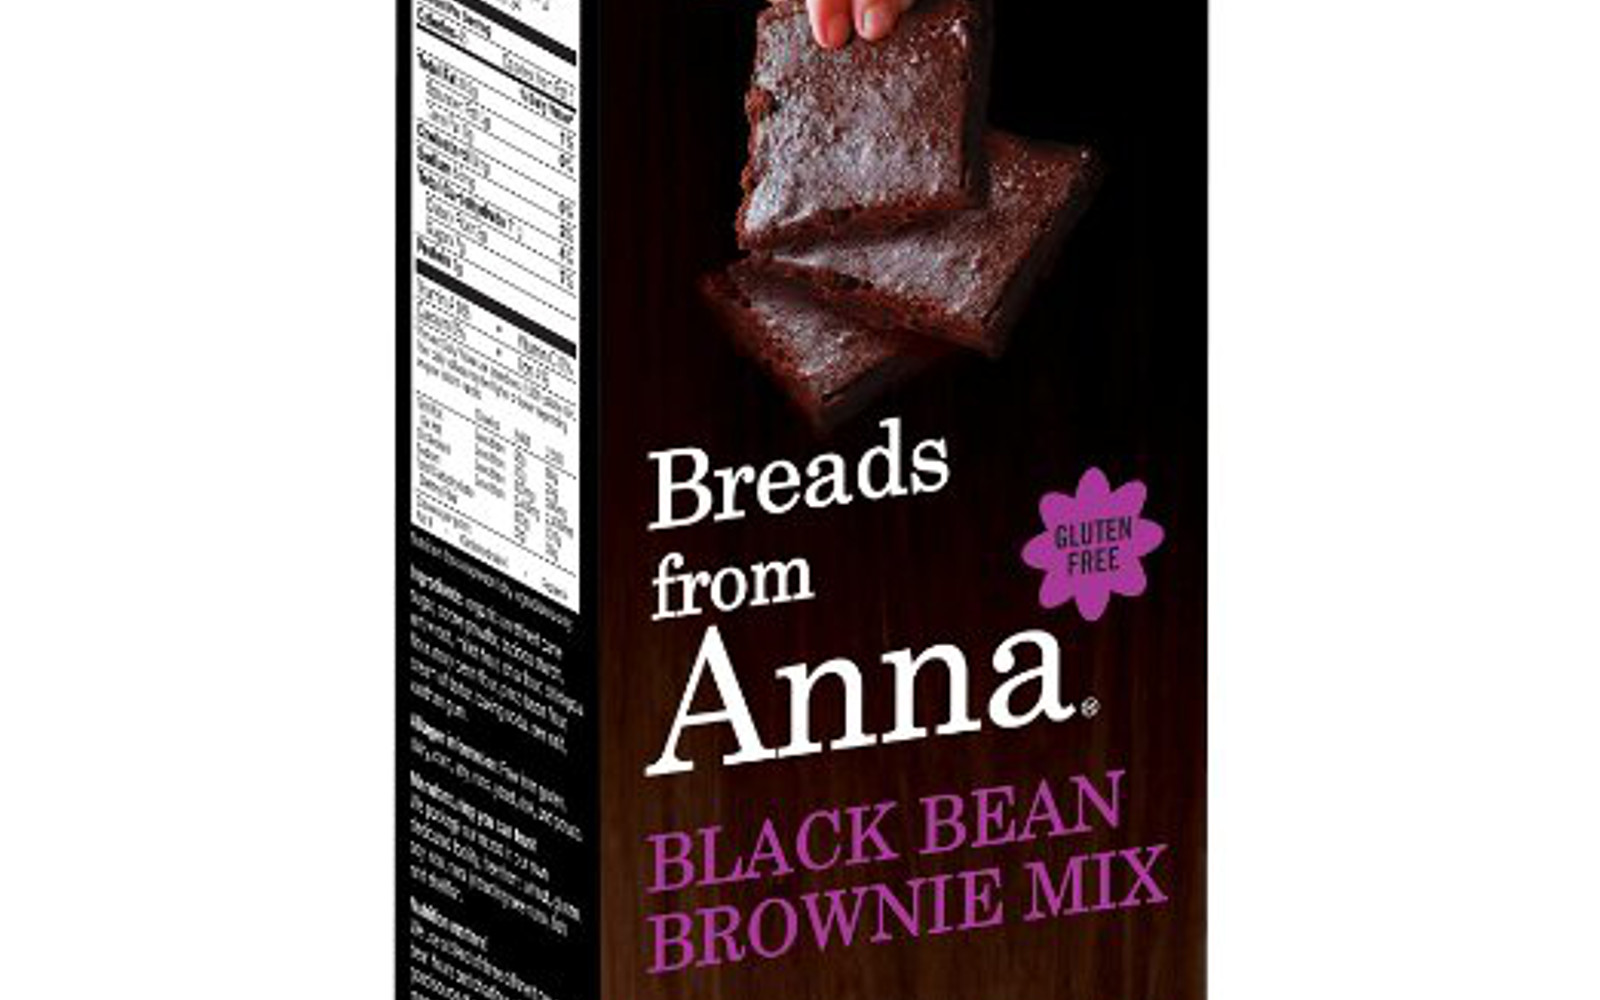 Breads From Anna Black Bean Brownie Mix